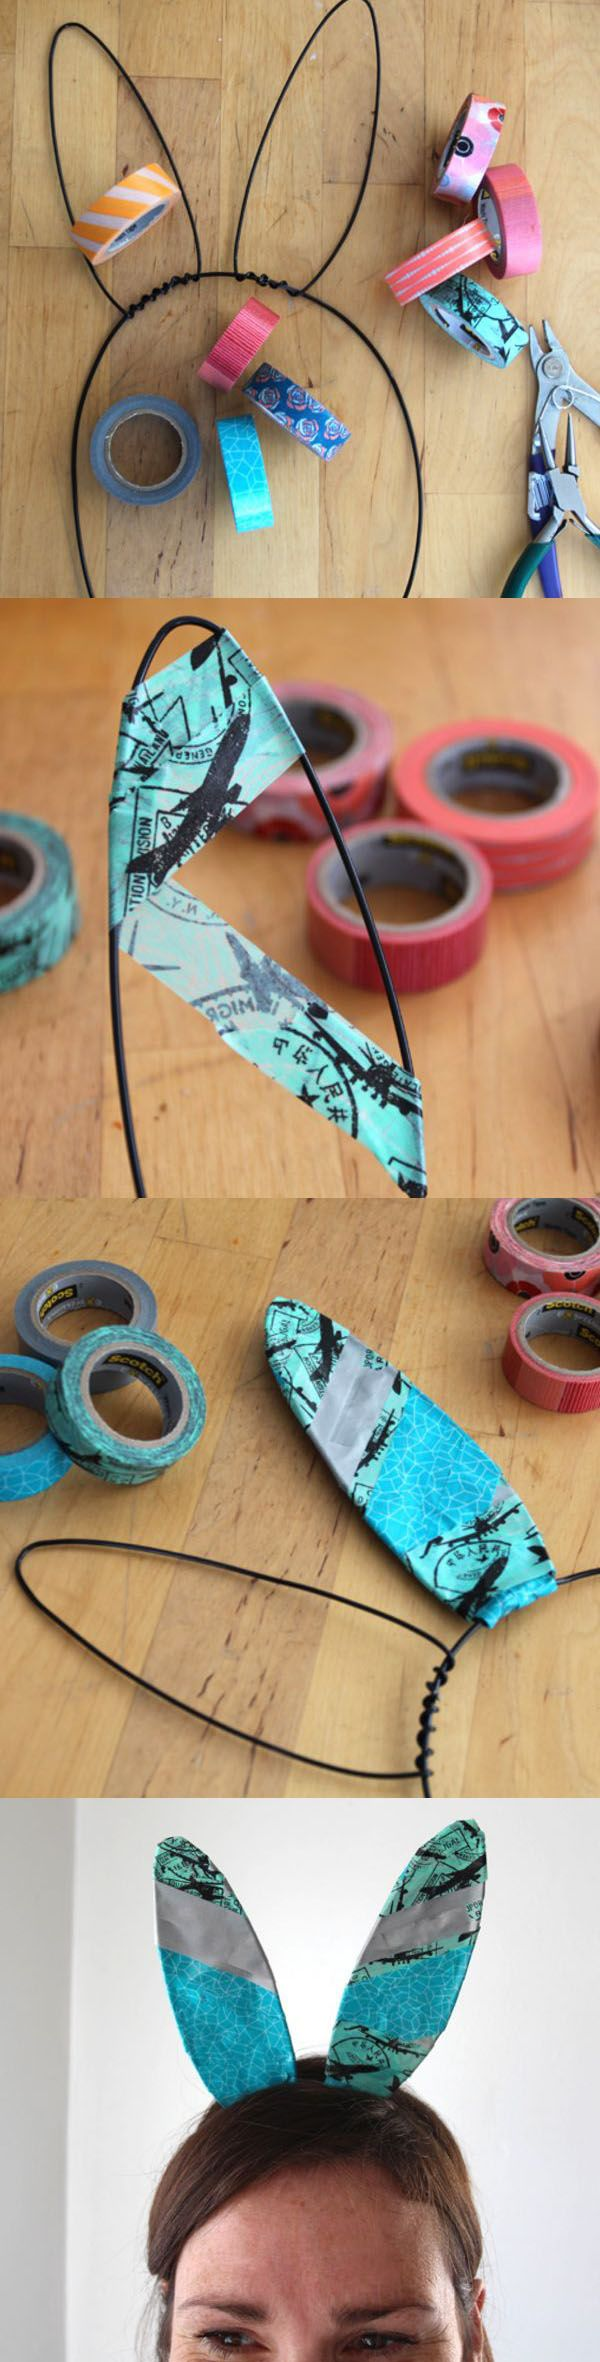 Make your own custom bunny years with some floral wire and washi tape. Super cute for family photos!